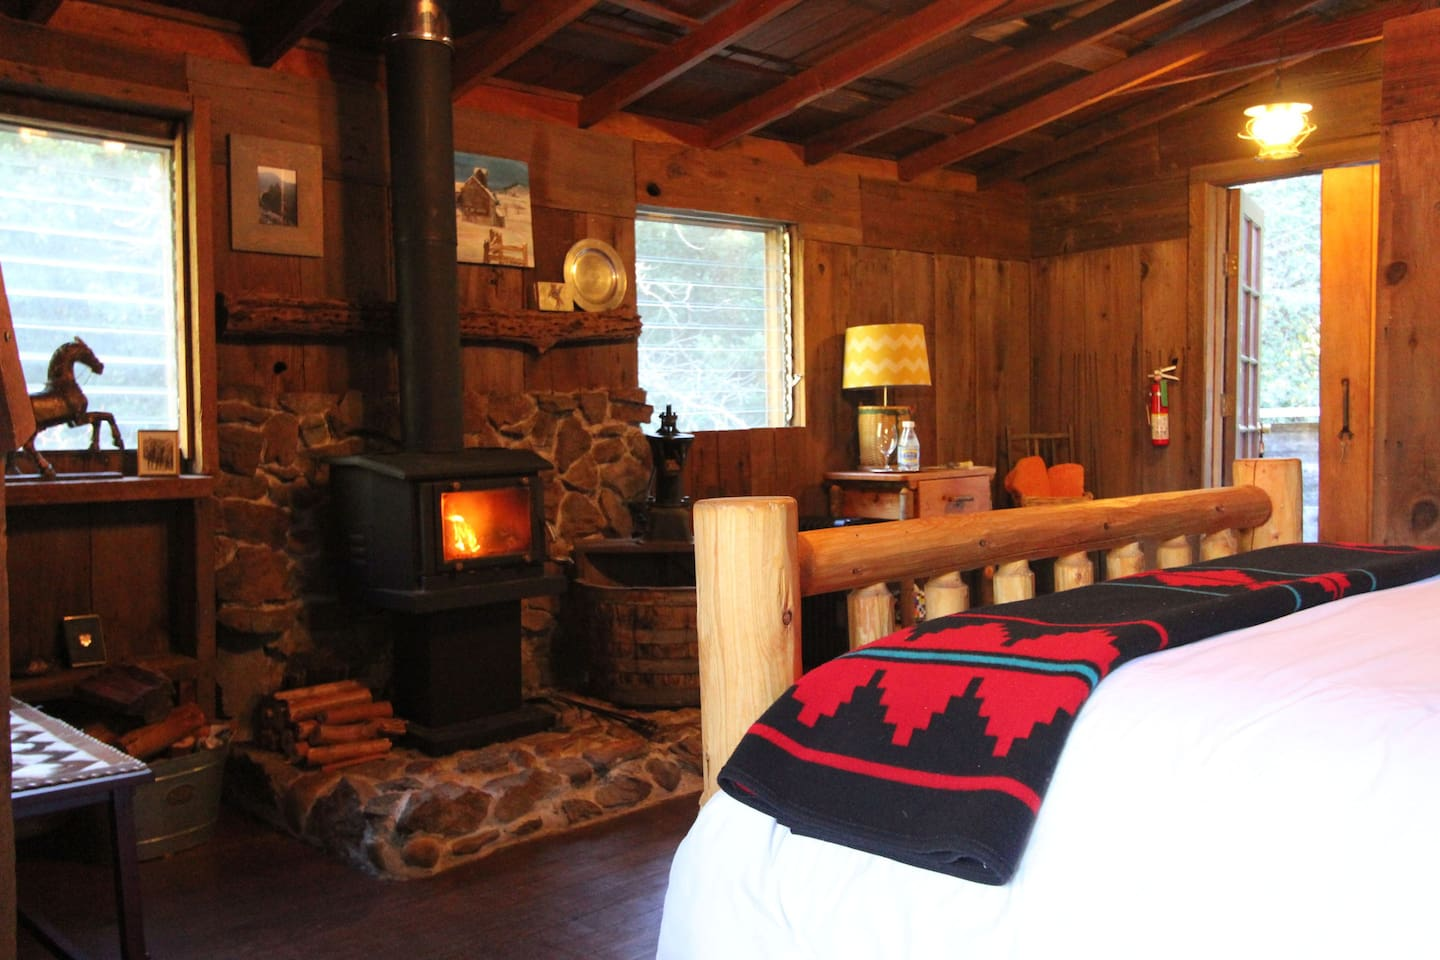 A fireplace graces the rustic room